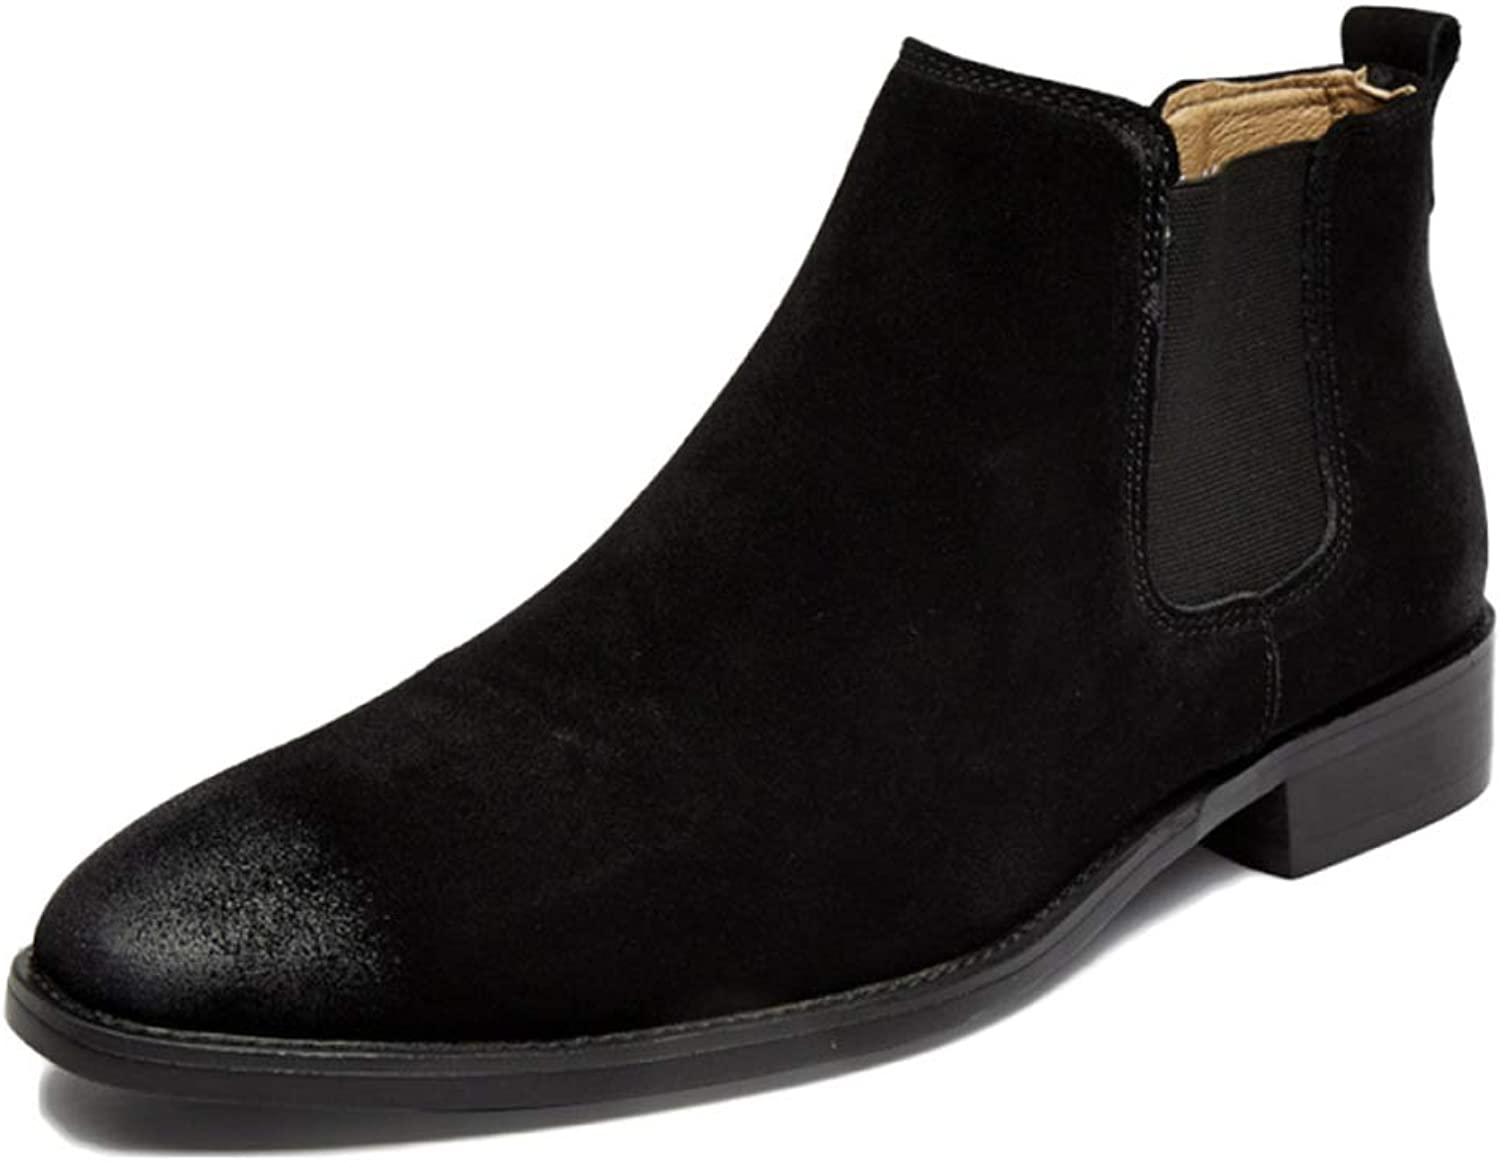 Men's Boots Chelsea Boots Leather Official Security Brock Classic High To Help Boots